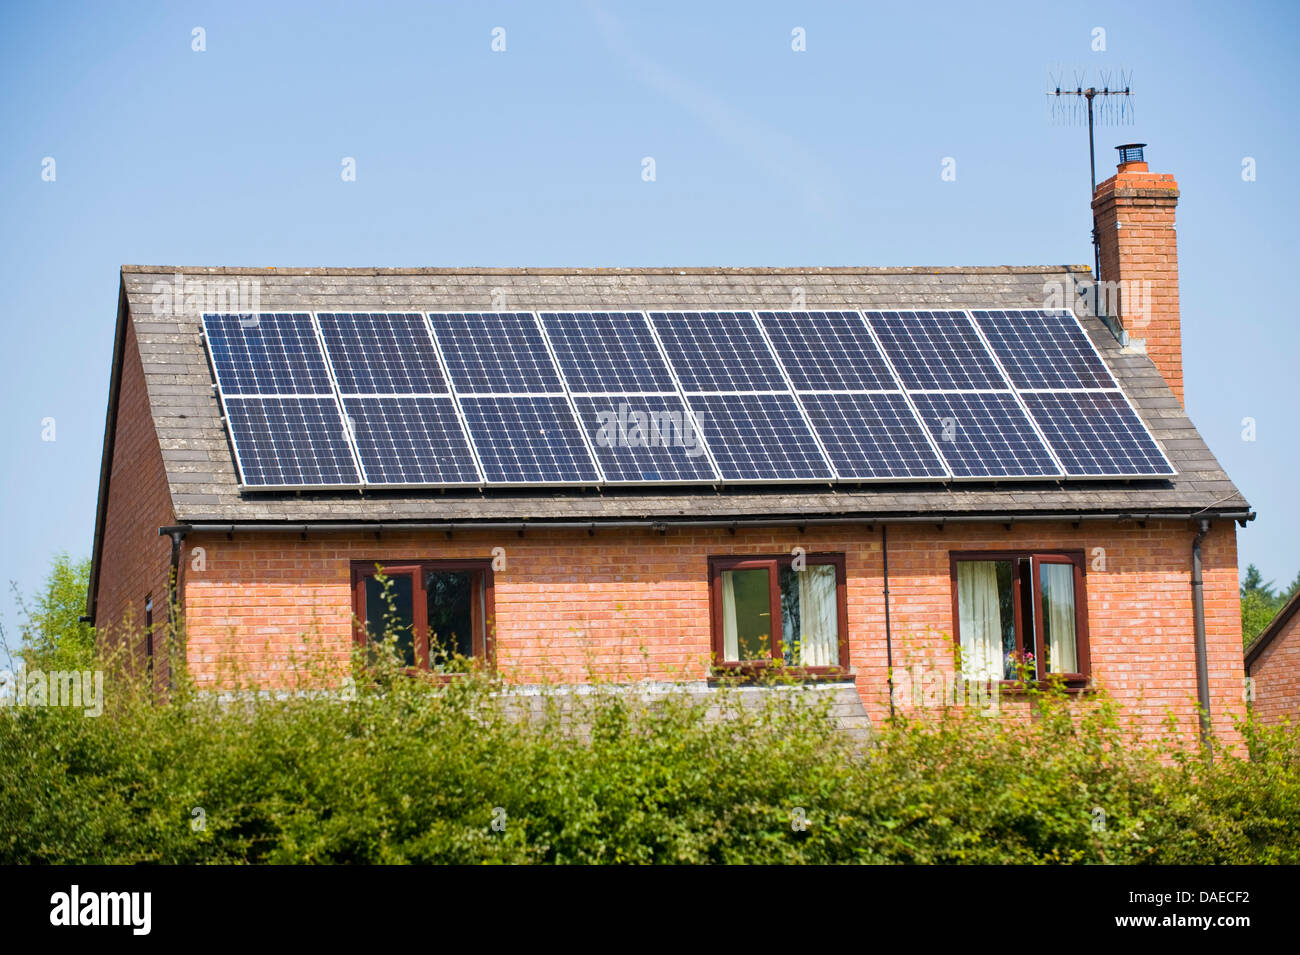 solar panels mobile homes html with Stock Photo Solar Panels On Roof Of Modern Detached House In Rural Village Of 58094822 on Install Metal Roof Mobile Home besides 2004 Ford F450 Lexington Motorhome 32974067 besides Oka 4x4 Off Road Travel Poptop likewise 7 Expensive Mobile Homes besides Stock Photo Timber Clad Zero Carbon Passive House With Triple Glazed Windows Roof 30958708.